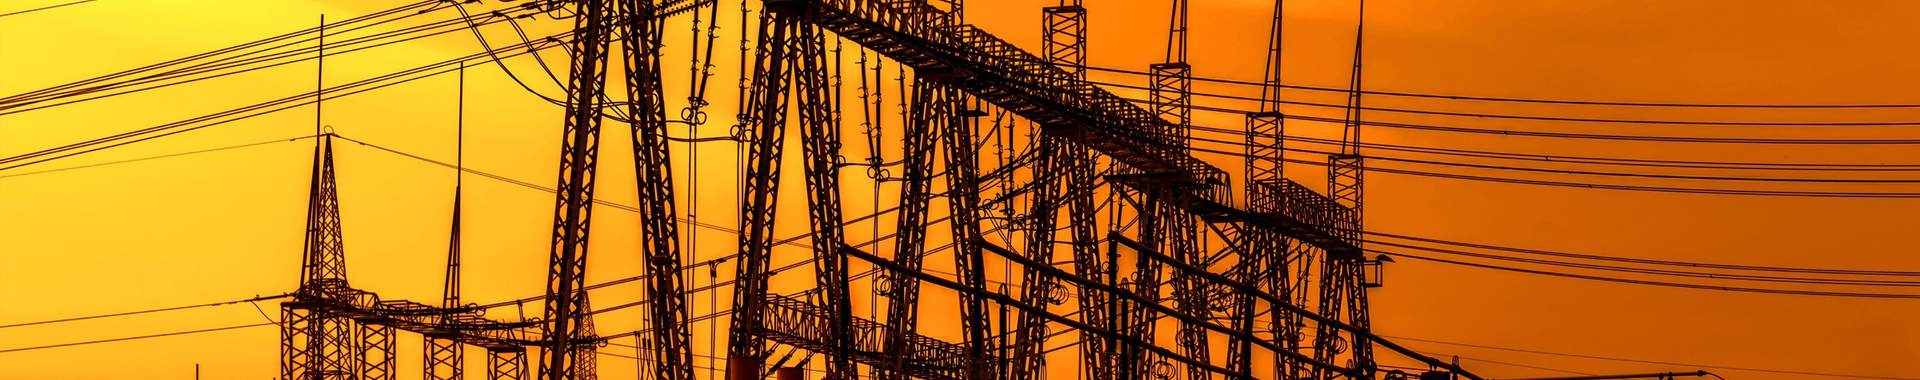 Power stations at dusk